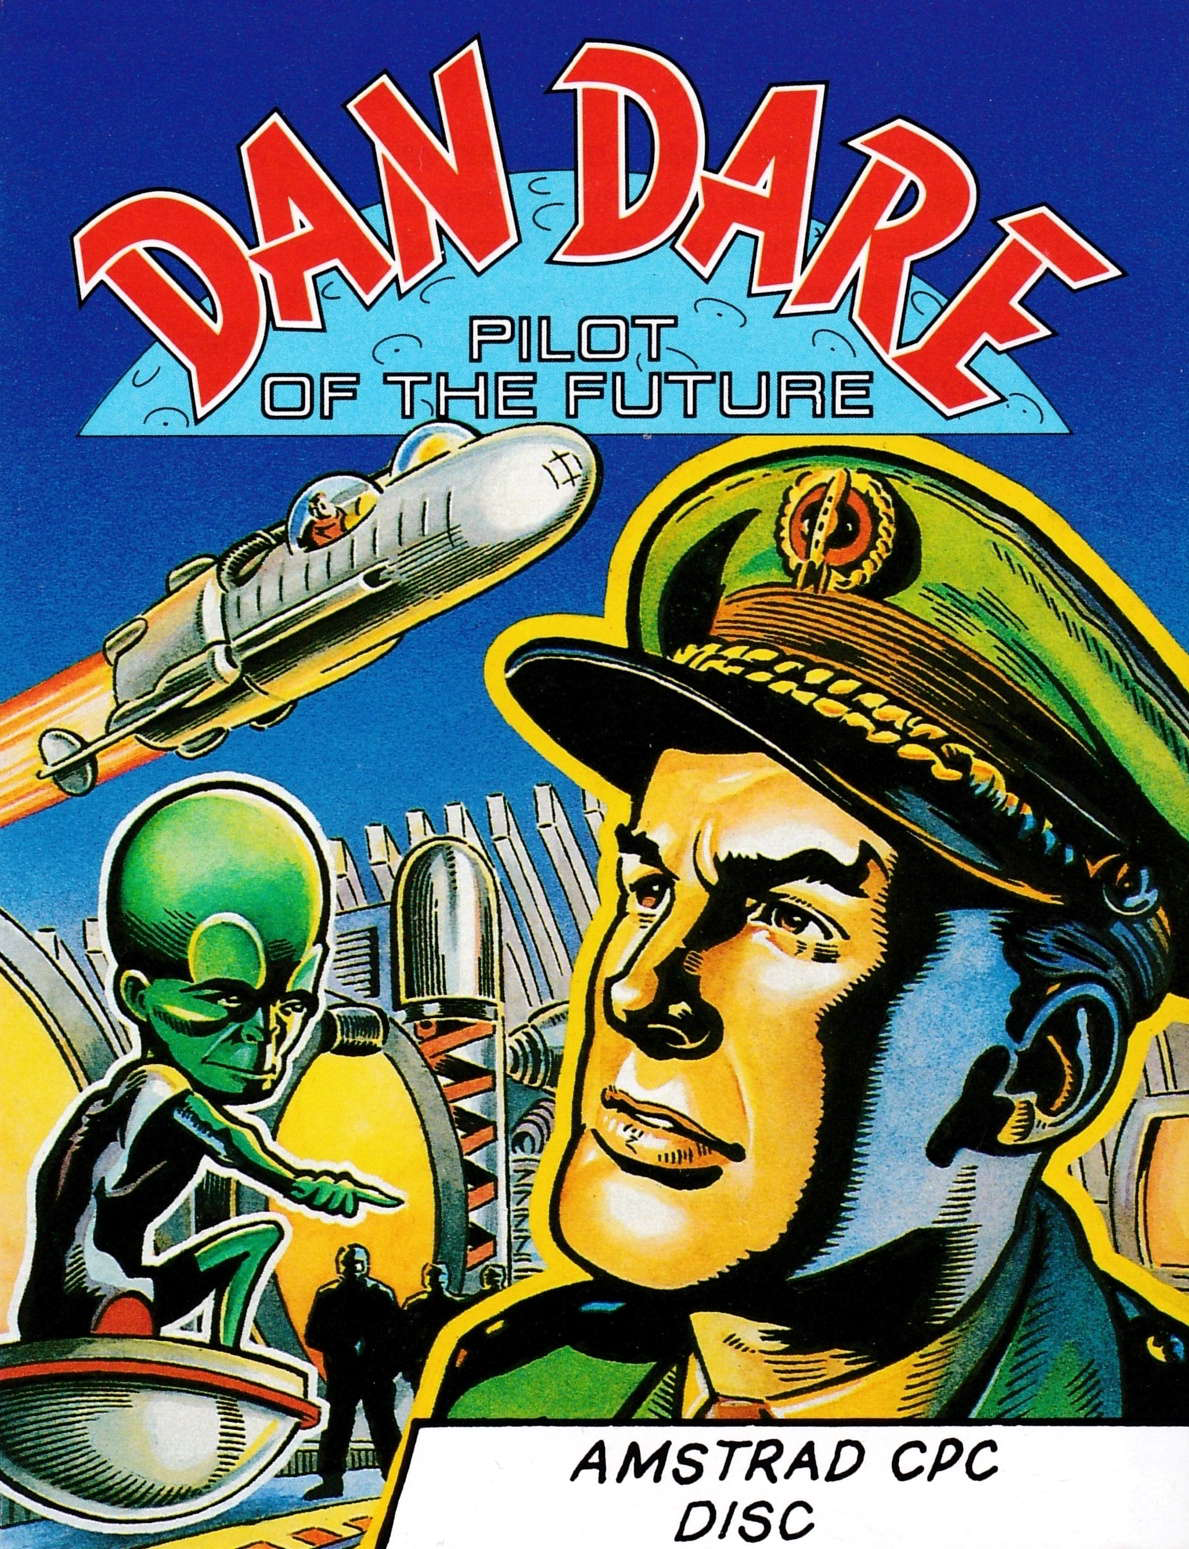 screenshot of the Amstrad CPC game Dan Dare by GameBase CPC